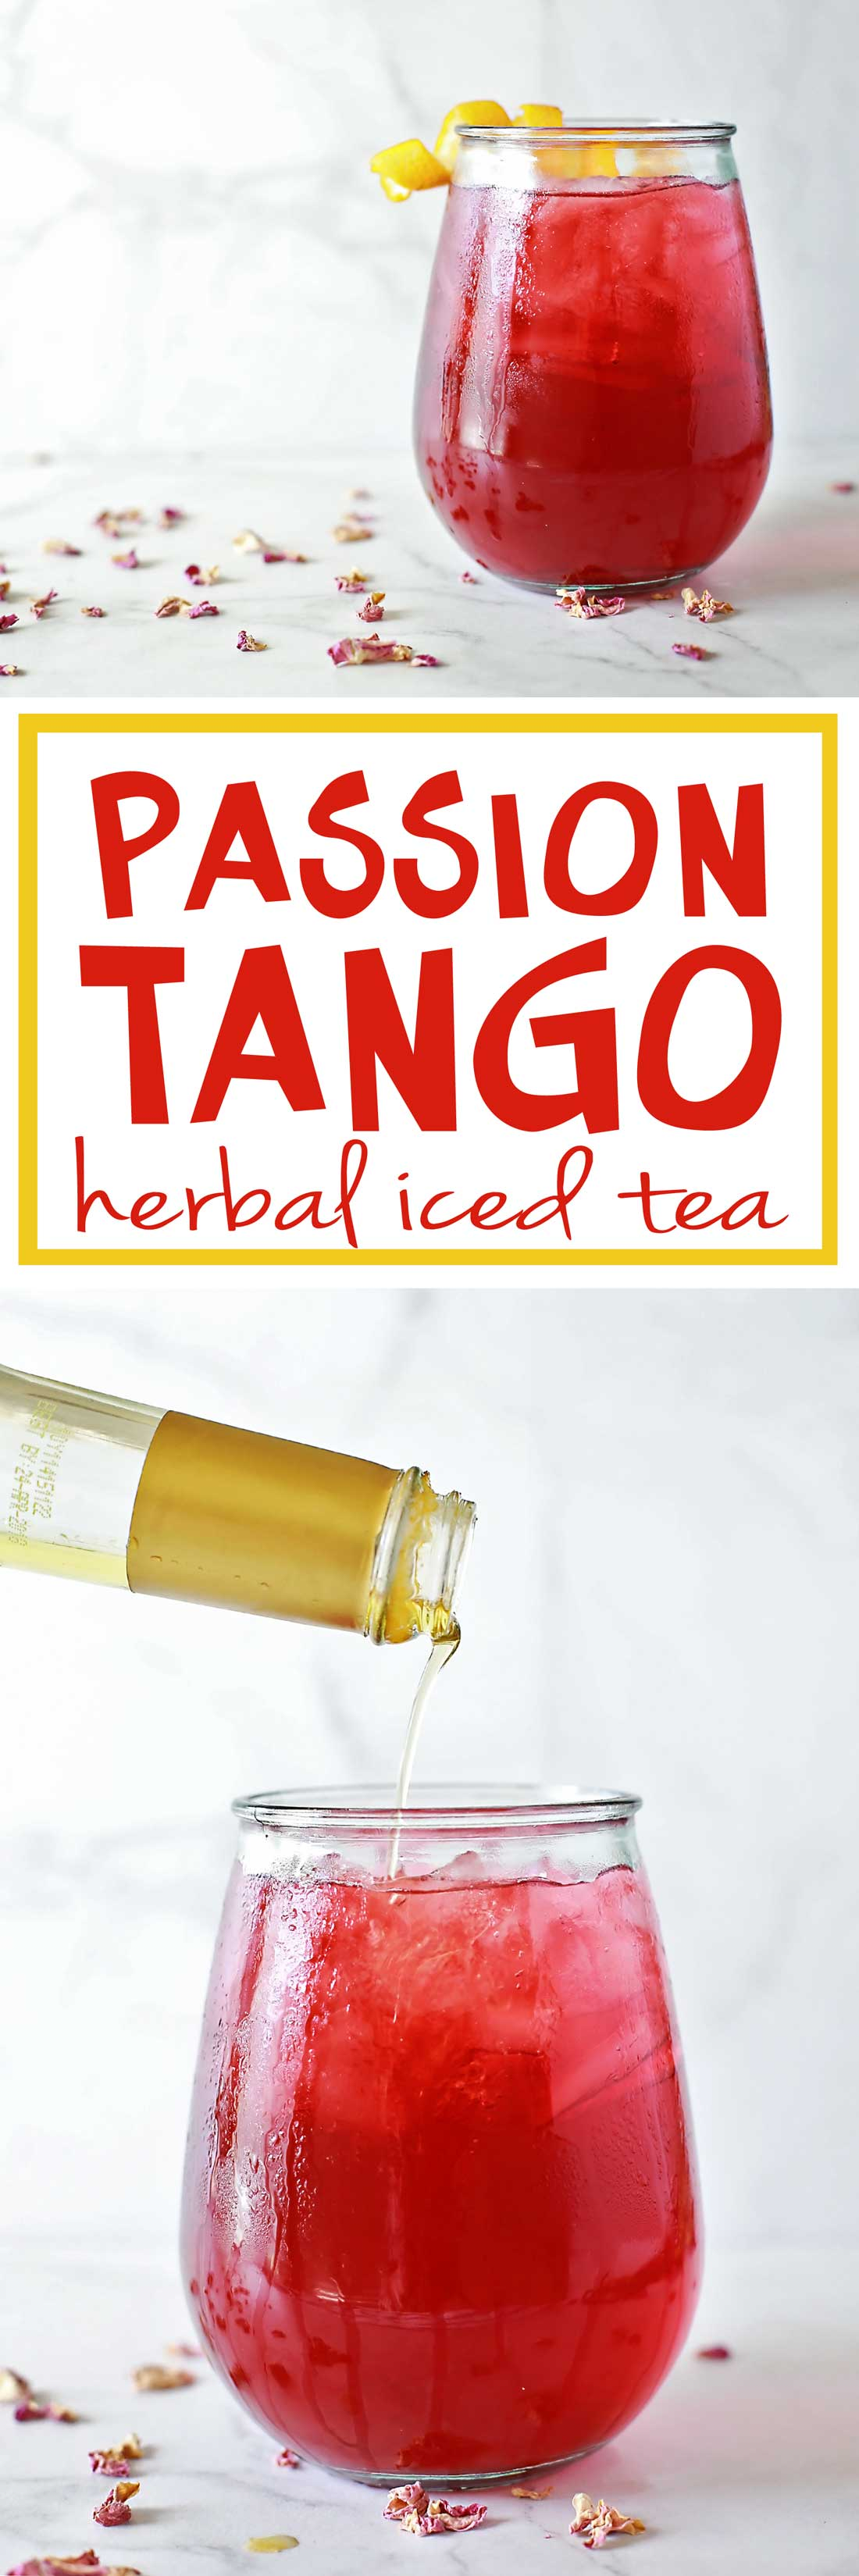 Amazing Starbucks copy cat recipe by Flriting with flavor. Passion Tango Sweet Herbal iced Tea